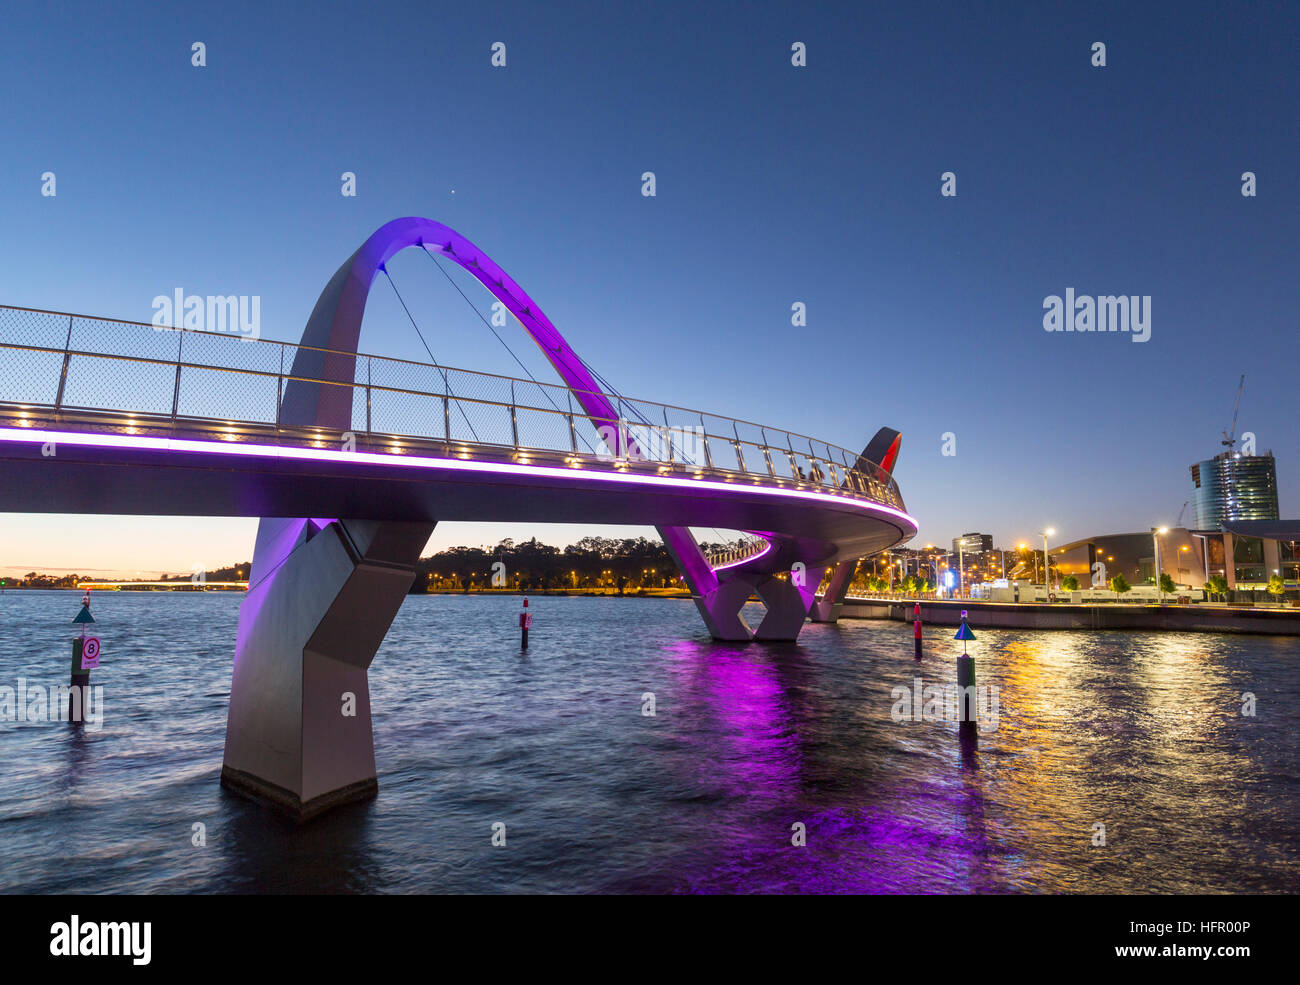 The Elizabeth Quay bridge on the Swan River illuminated at twilight, Perth, Western Australia, Australia - Stock Image